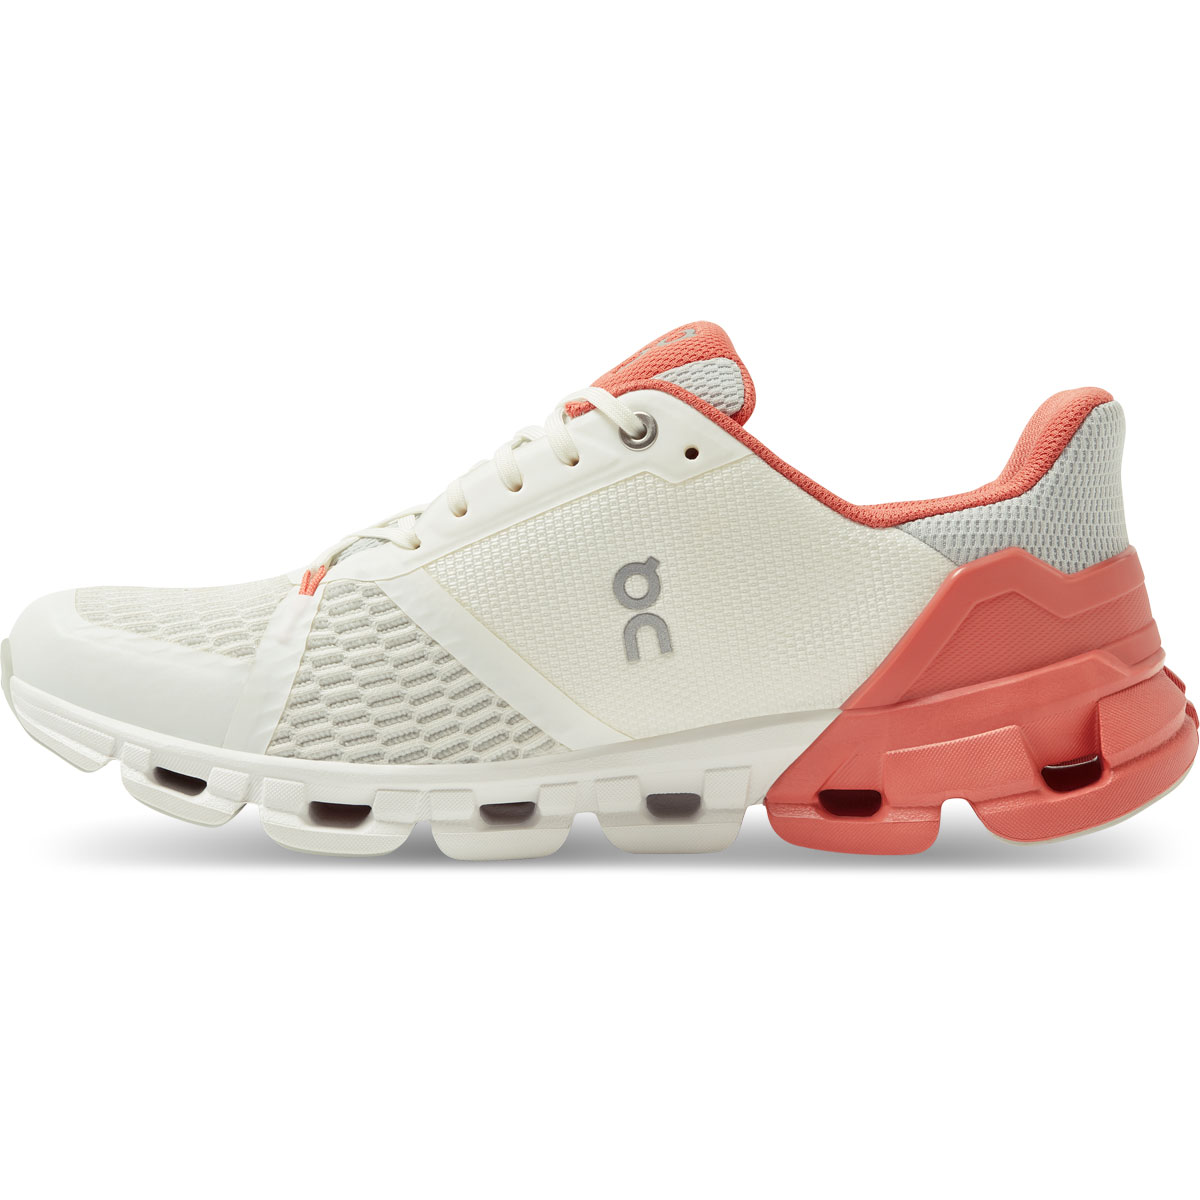 Women's On Cloudflyer 2.0 Running Shoe - Color: White/Coral - Size: 5 - Width: Regular, White/Coral, large, image 3